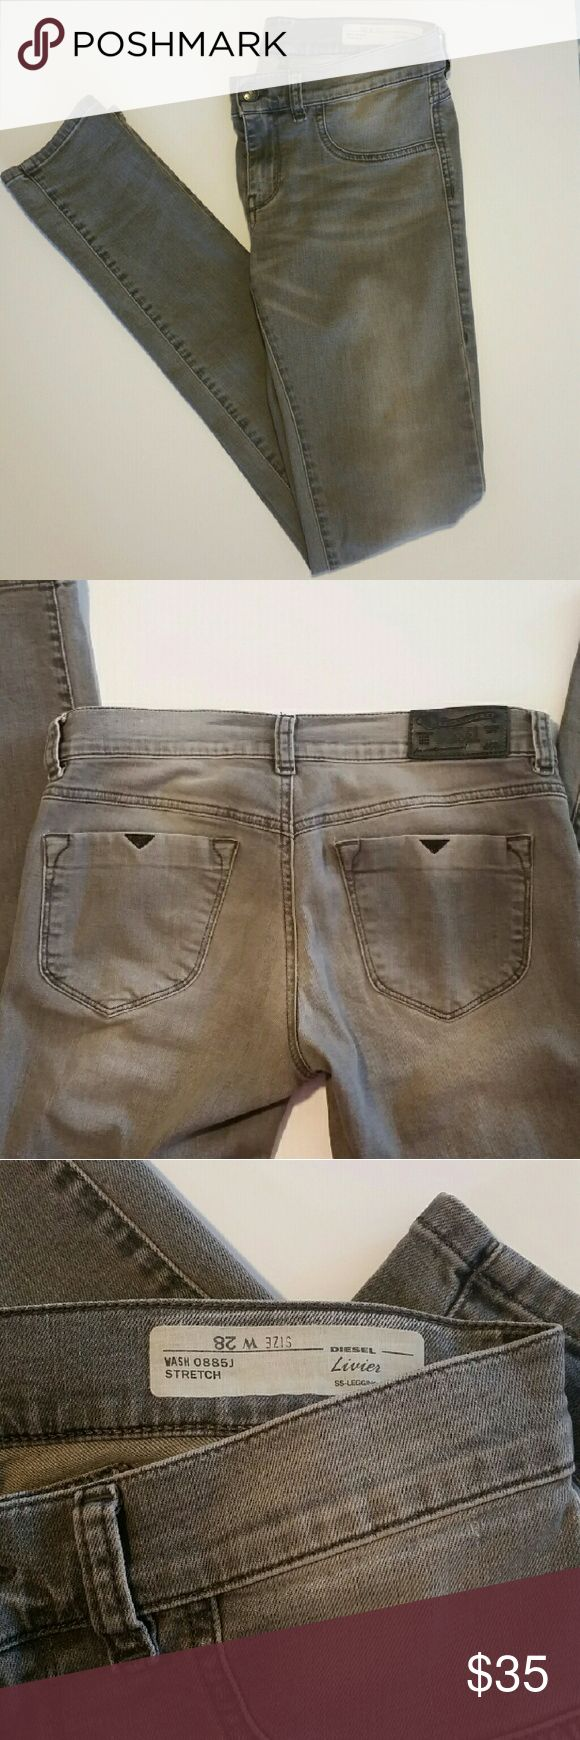 """Diesel Livier SS Legging Stretch Gray Jeans Sz 28 Diesel Super Slim Legging Jeans. Gently used - small flaw on front pocket (see third picture). Only small front pocket and back pockets open.  Women's size 28. Inseam 33"""" Diesel Jeans Skinny"""